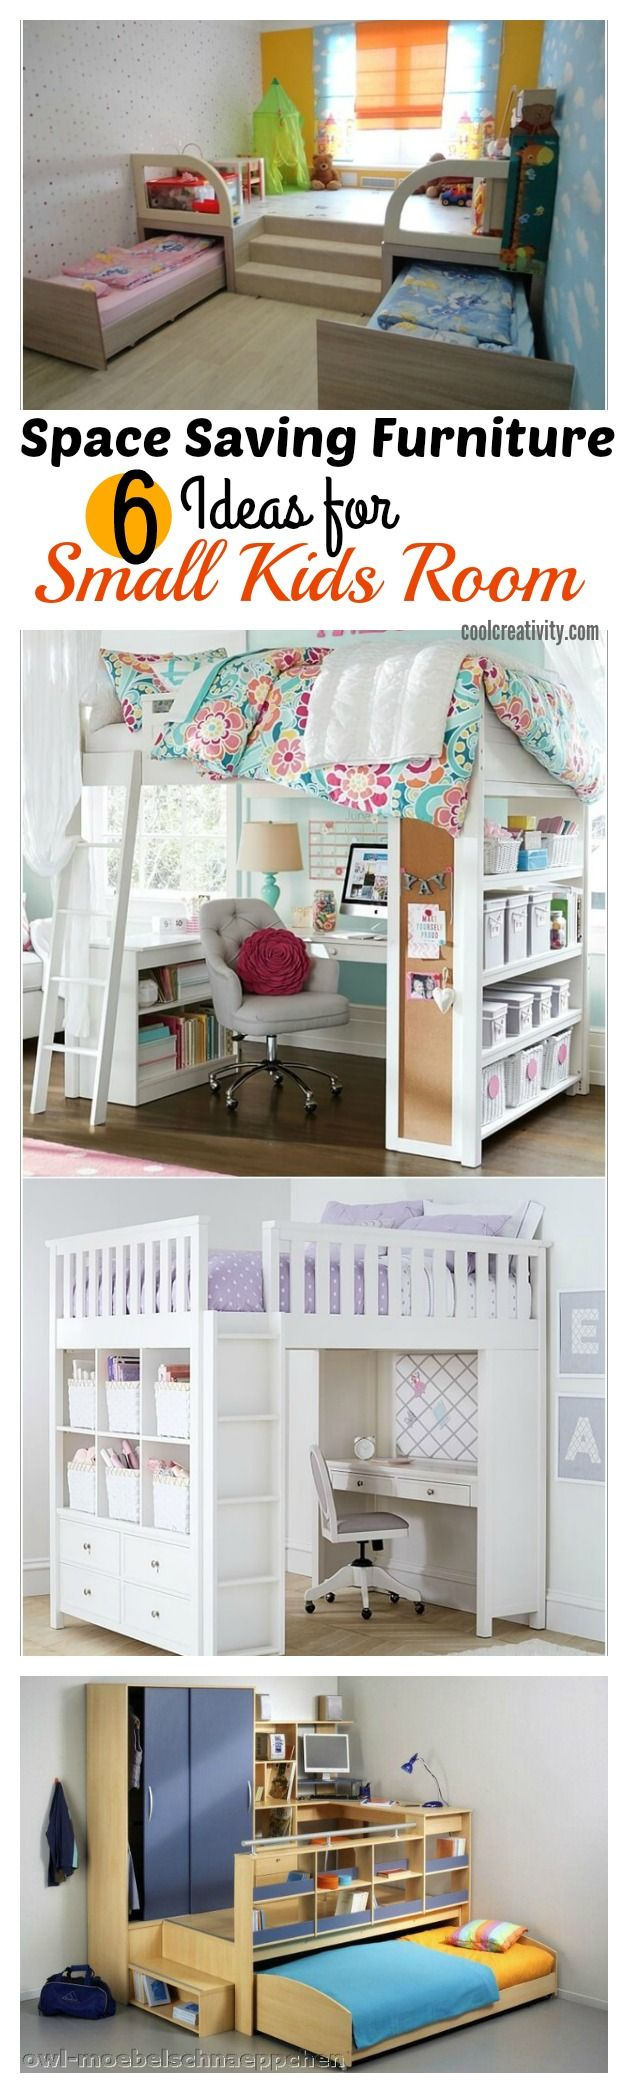 Bedroom Ideas Small Spaces best 25+ small kids rooms ideas on pinterest | kids bedroom